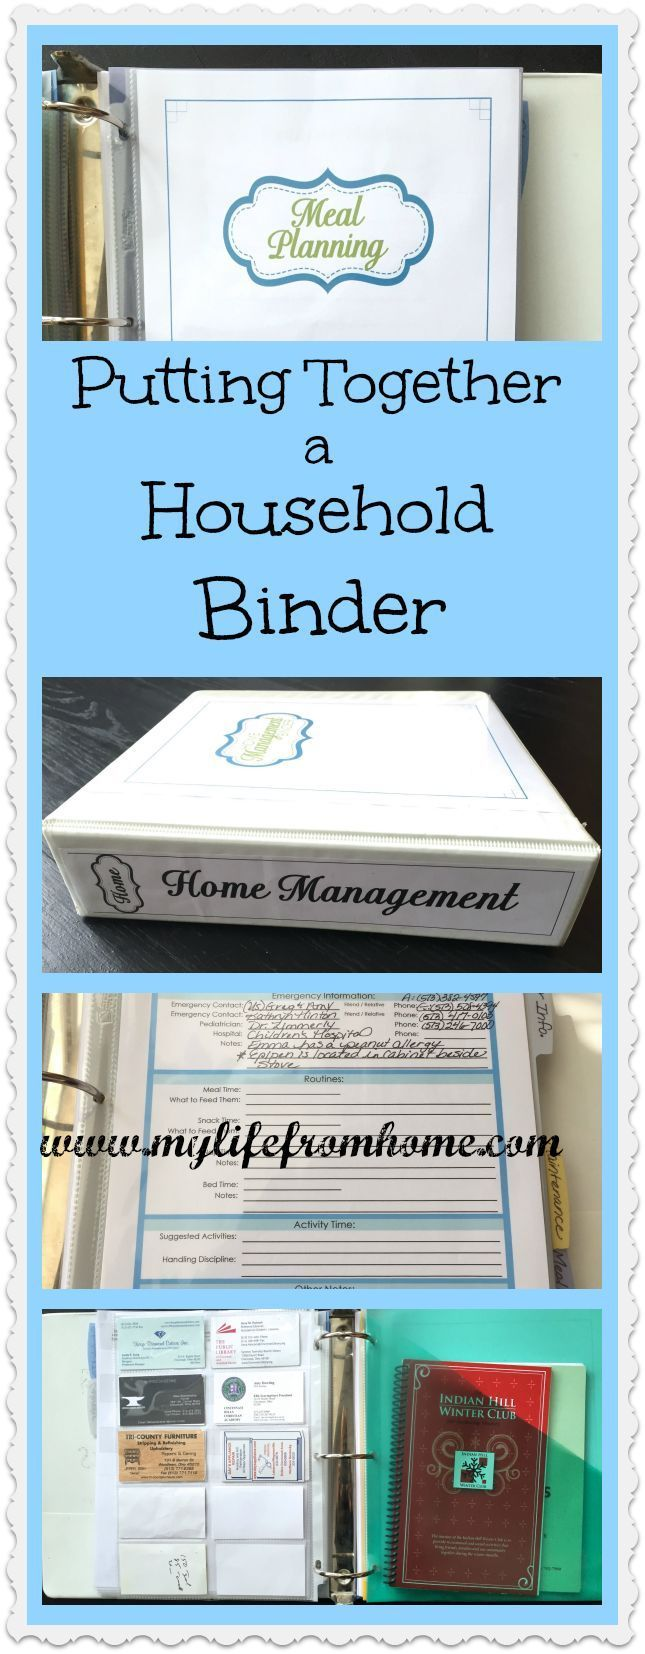 Need help organizing your household? All you need to know about putting together a household binder! | organization- household binder- printables- organizing household items